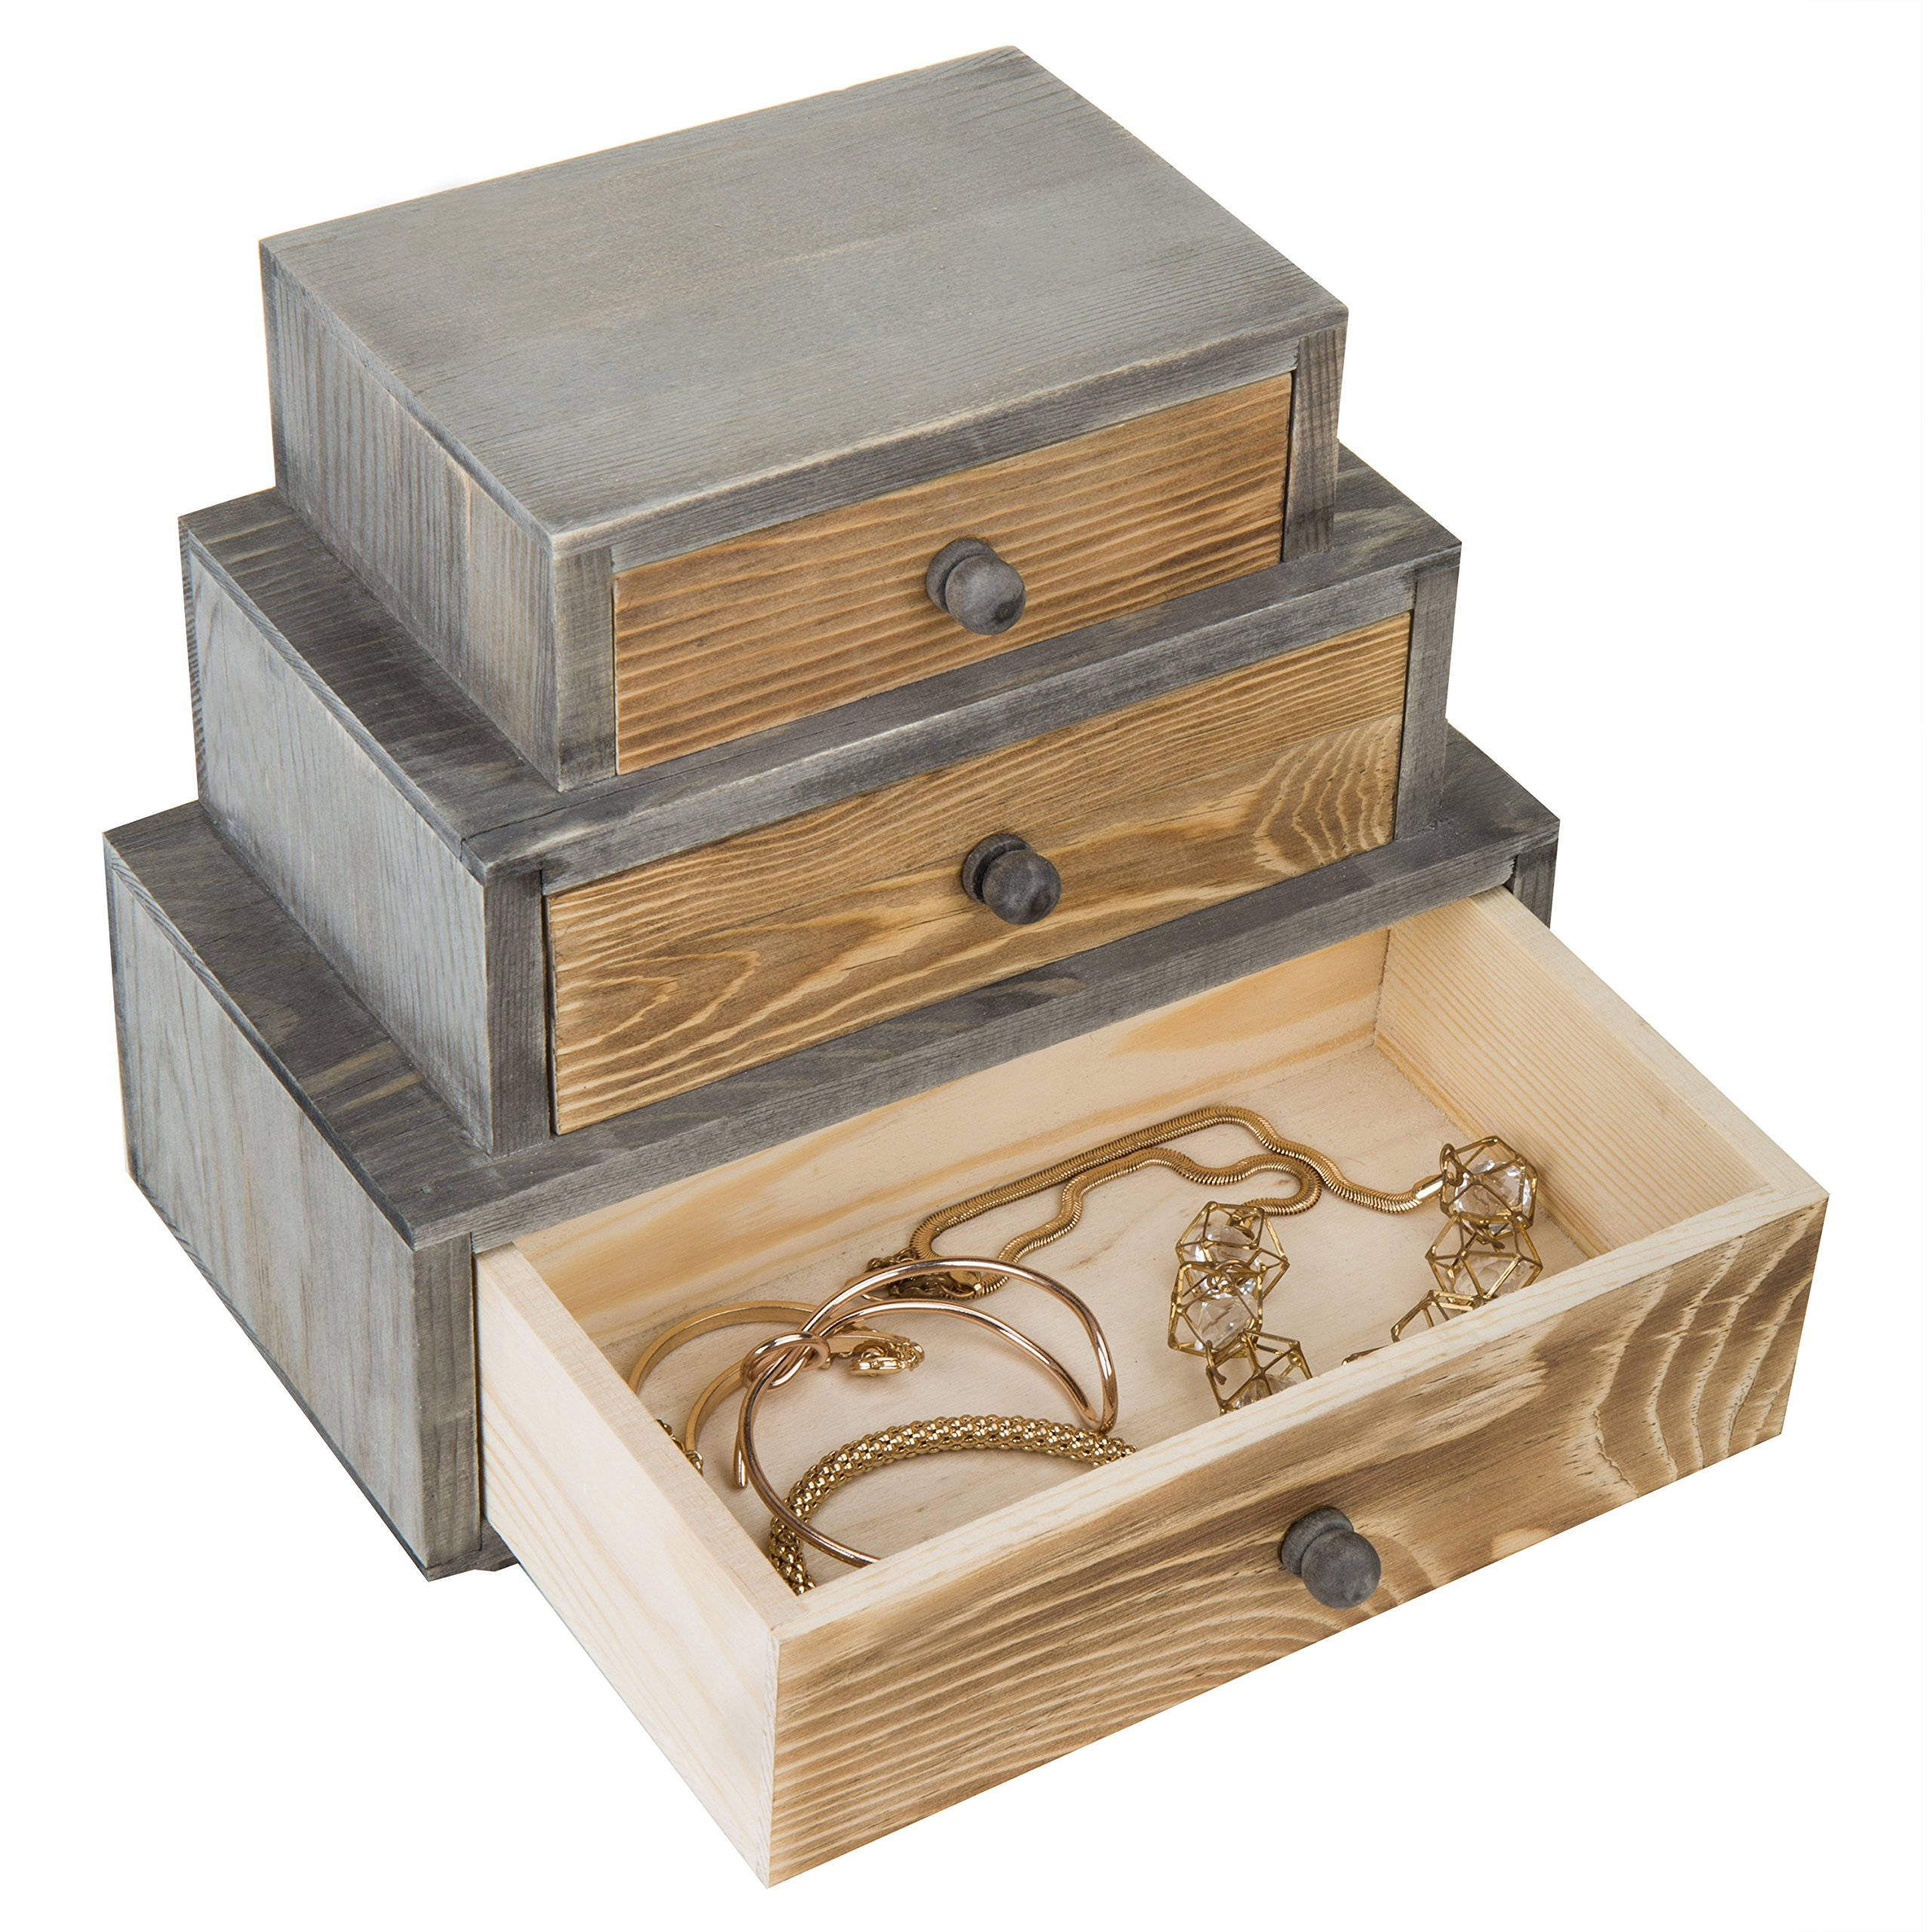 MyGift 3-Drawer Rustic Wood Office Storage Organizer by MyGift (Image #3)